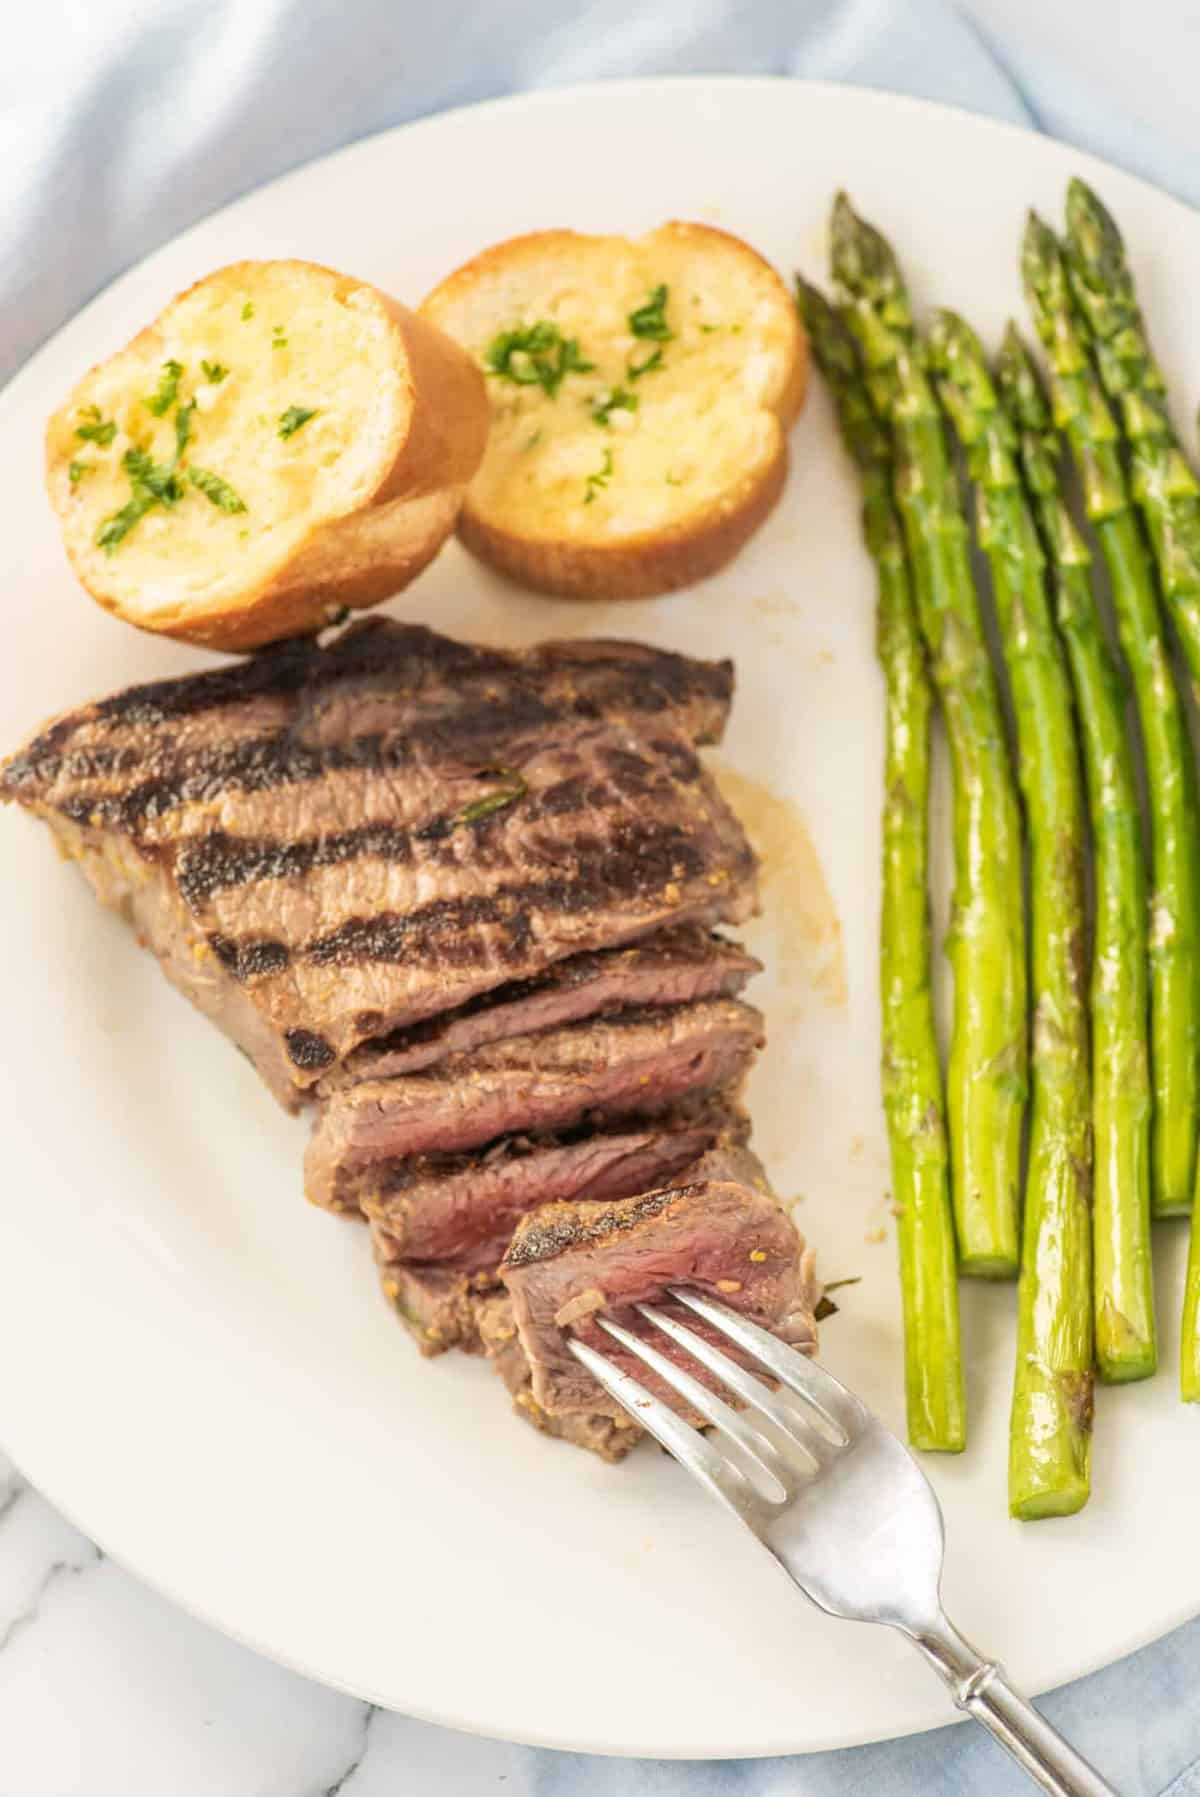 A grilled steak with a side of asparagus on a white plate.